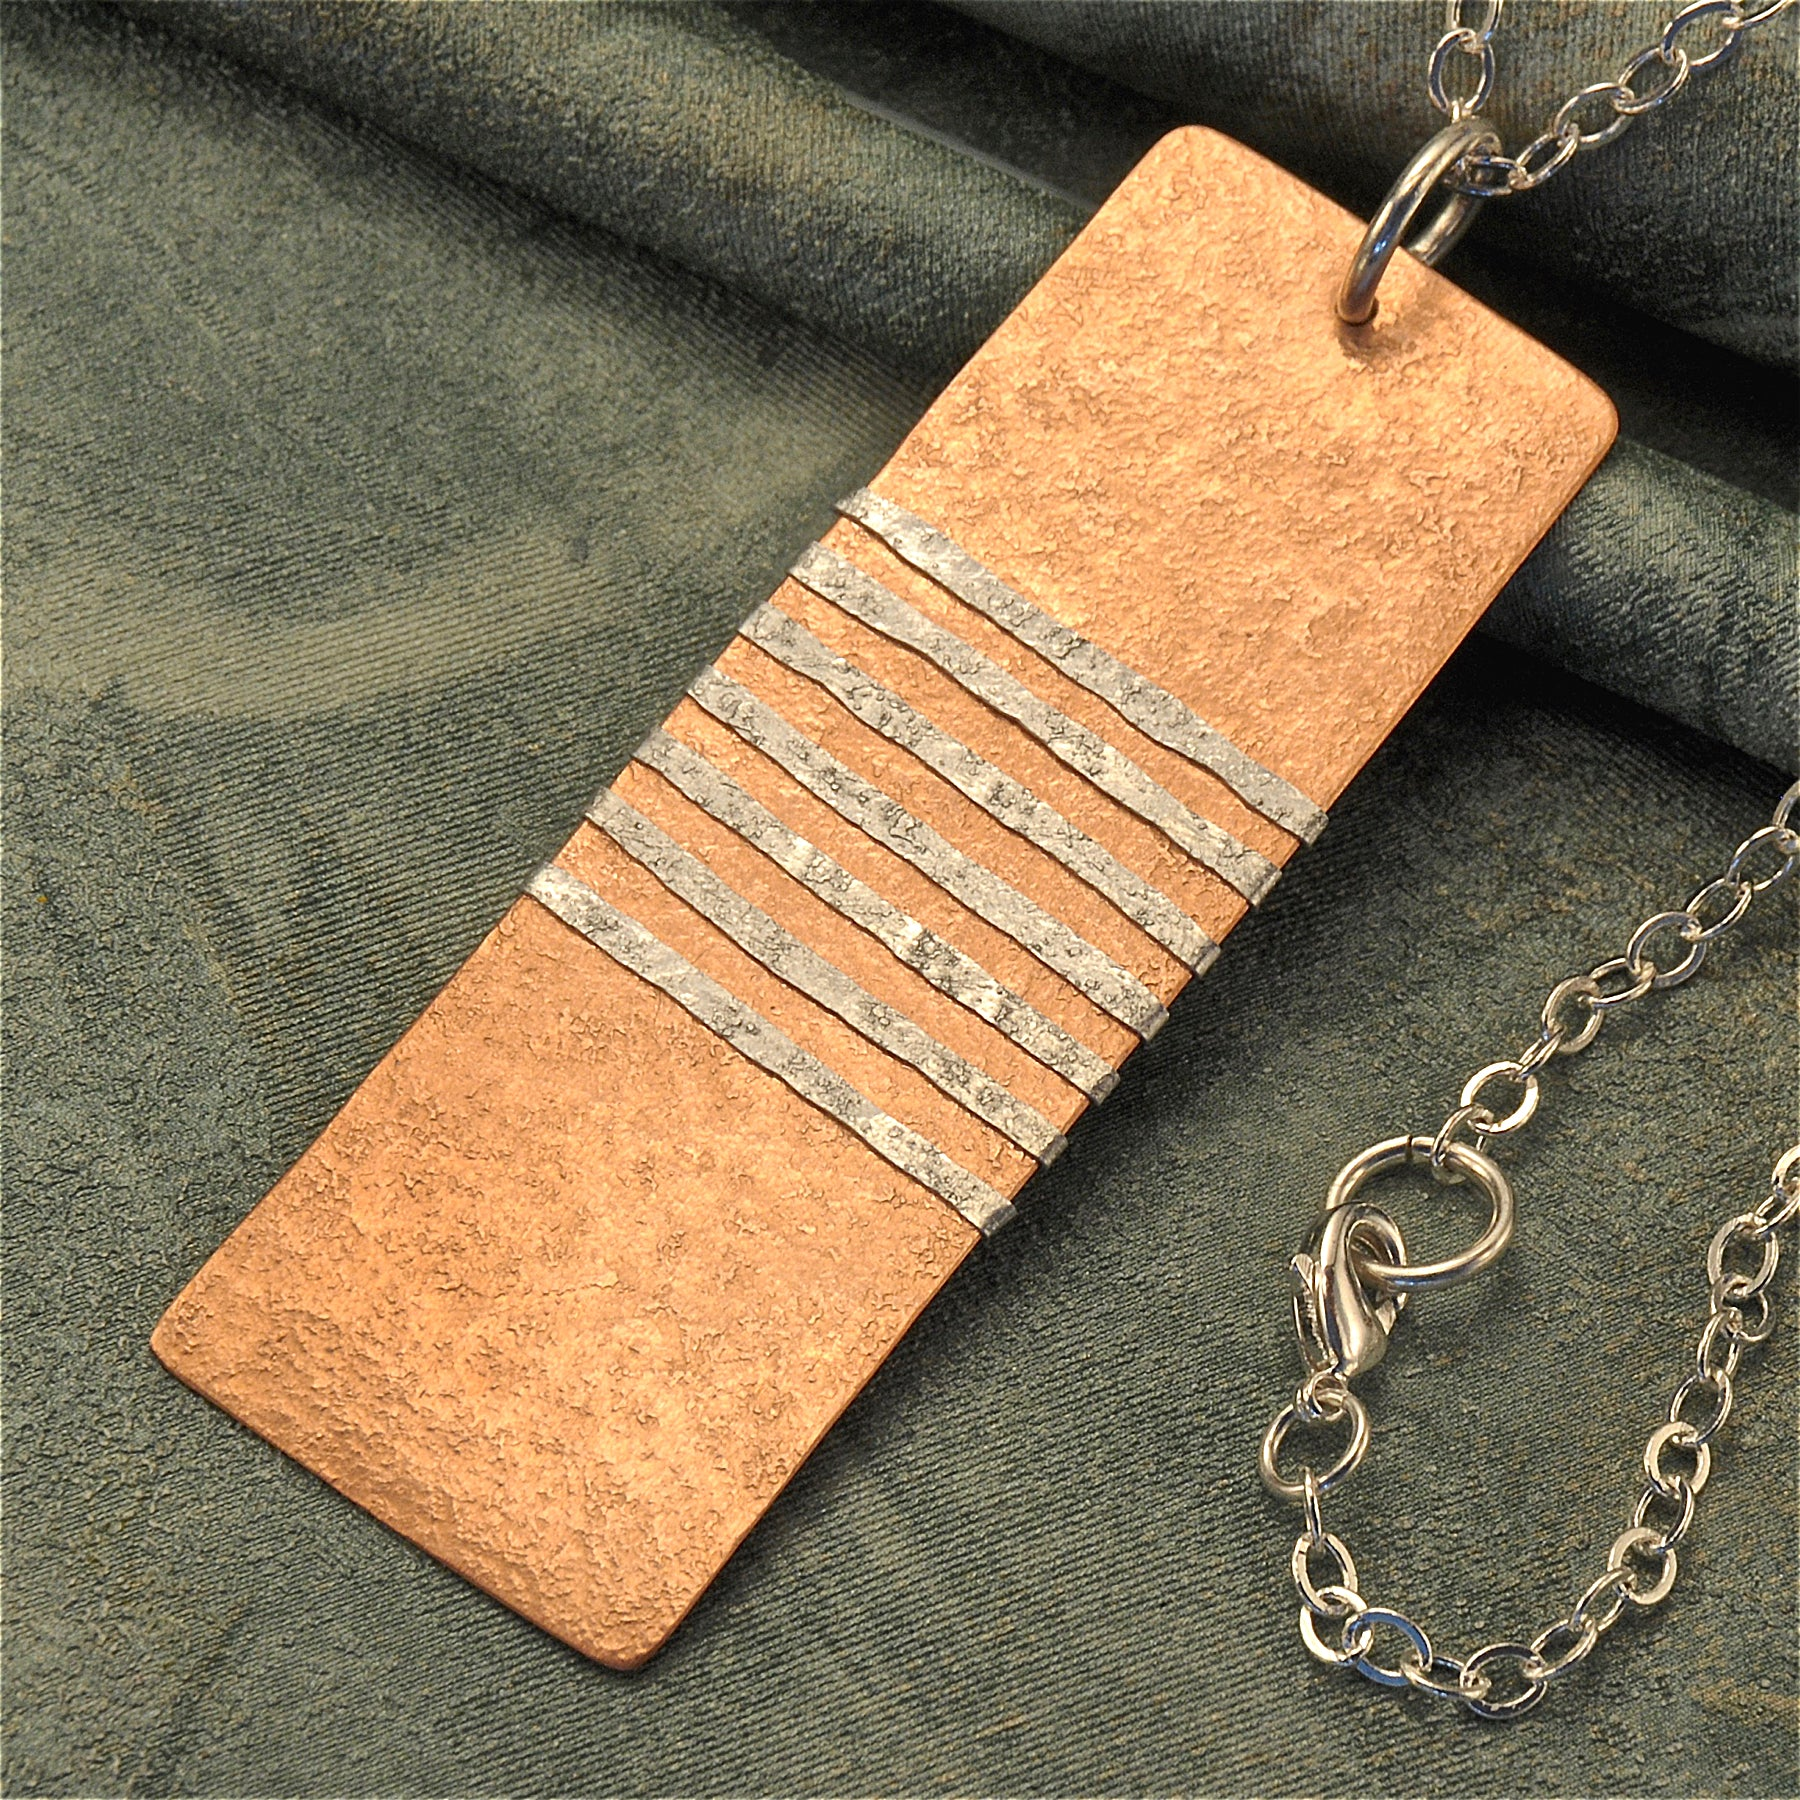 Rectangular copper necklace